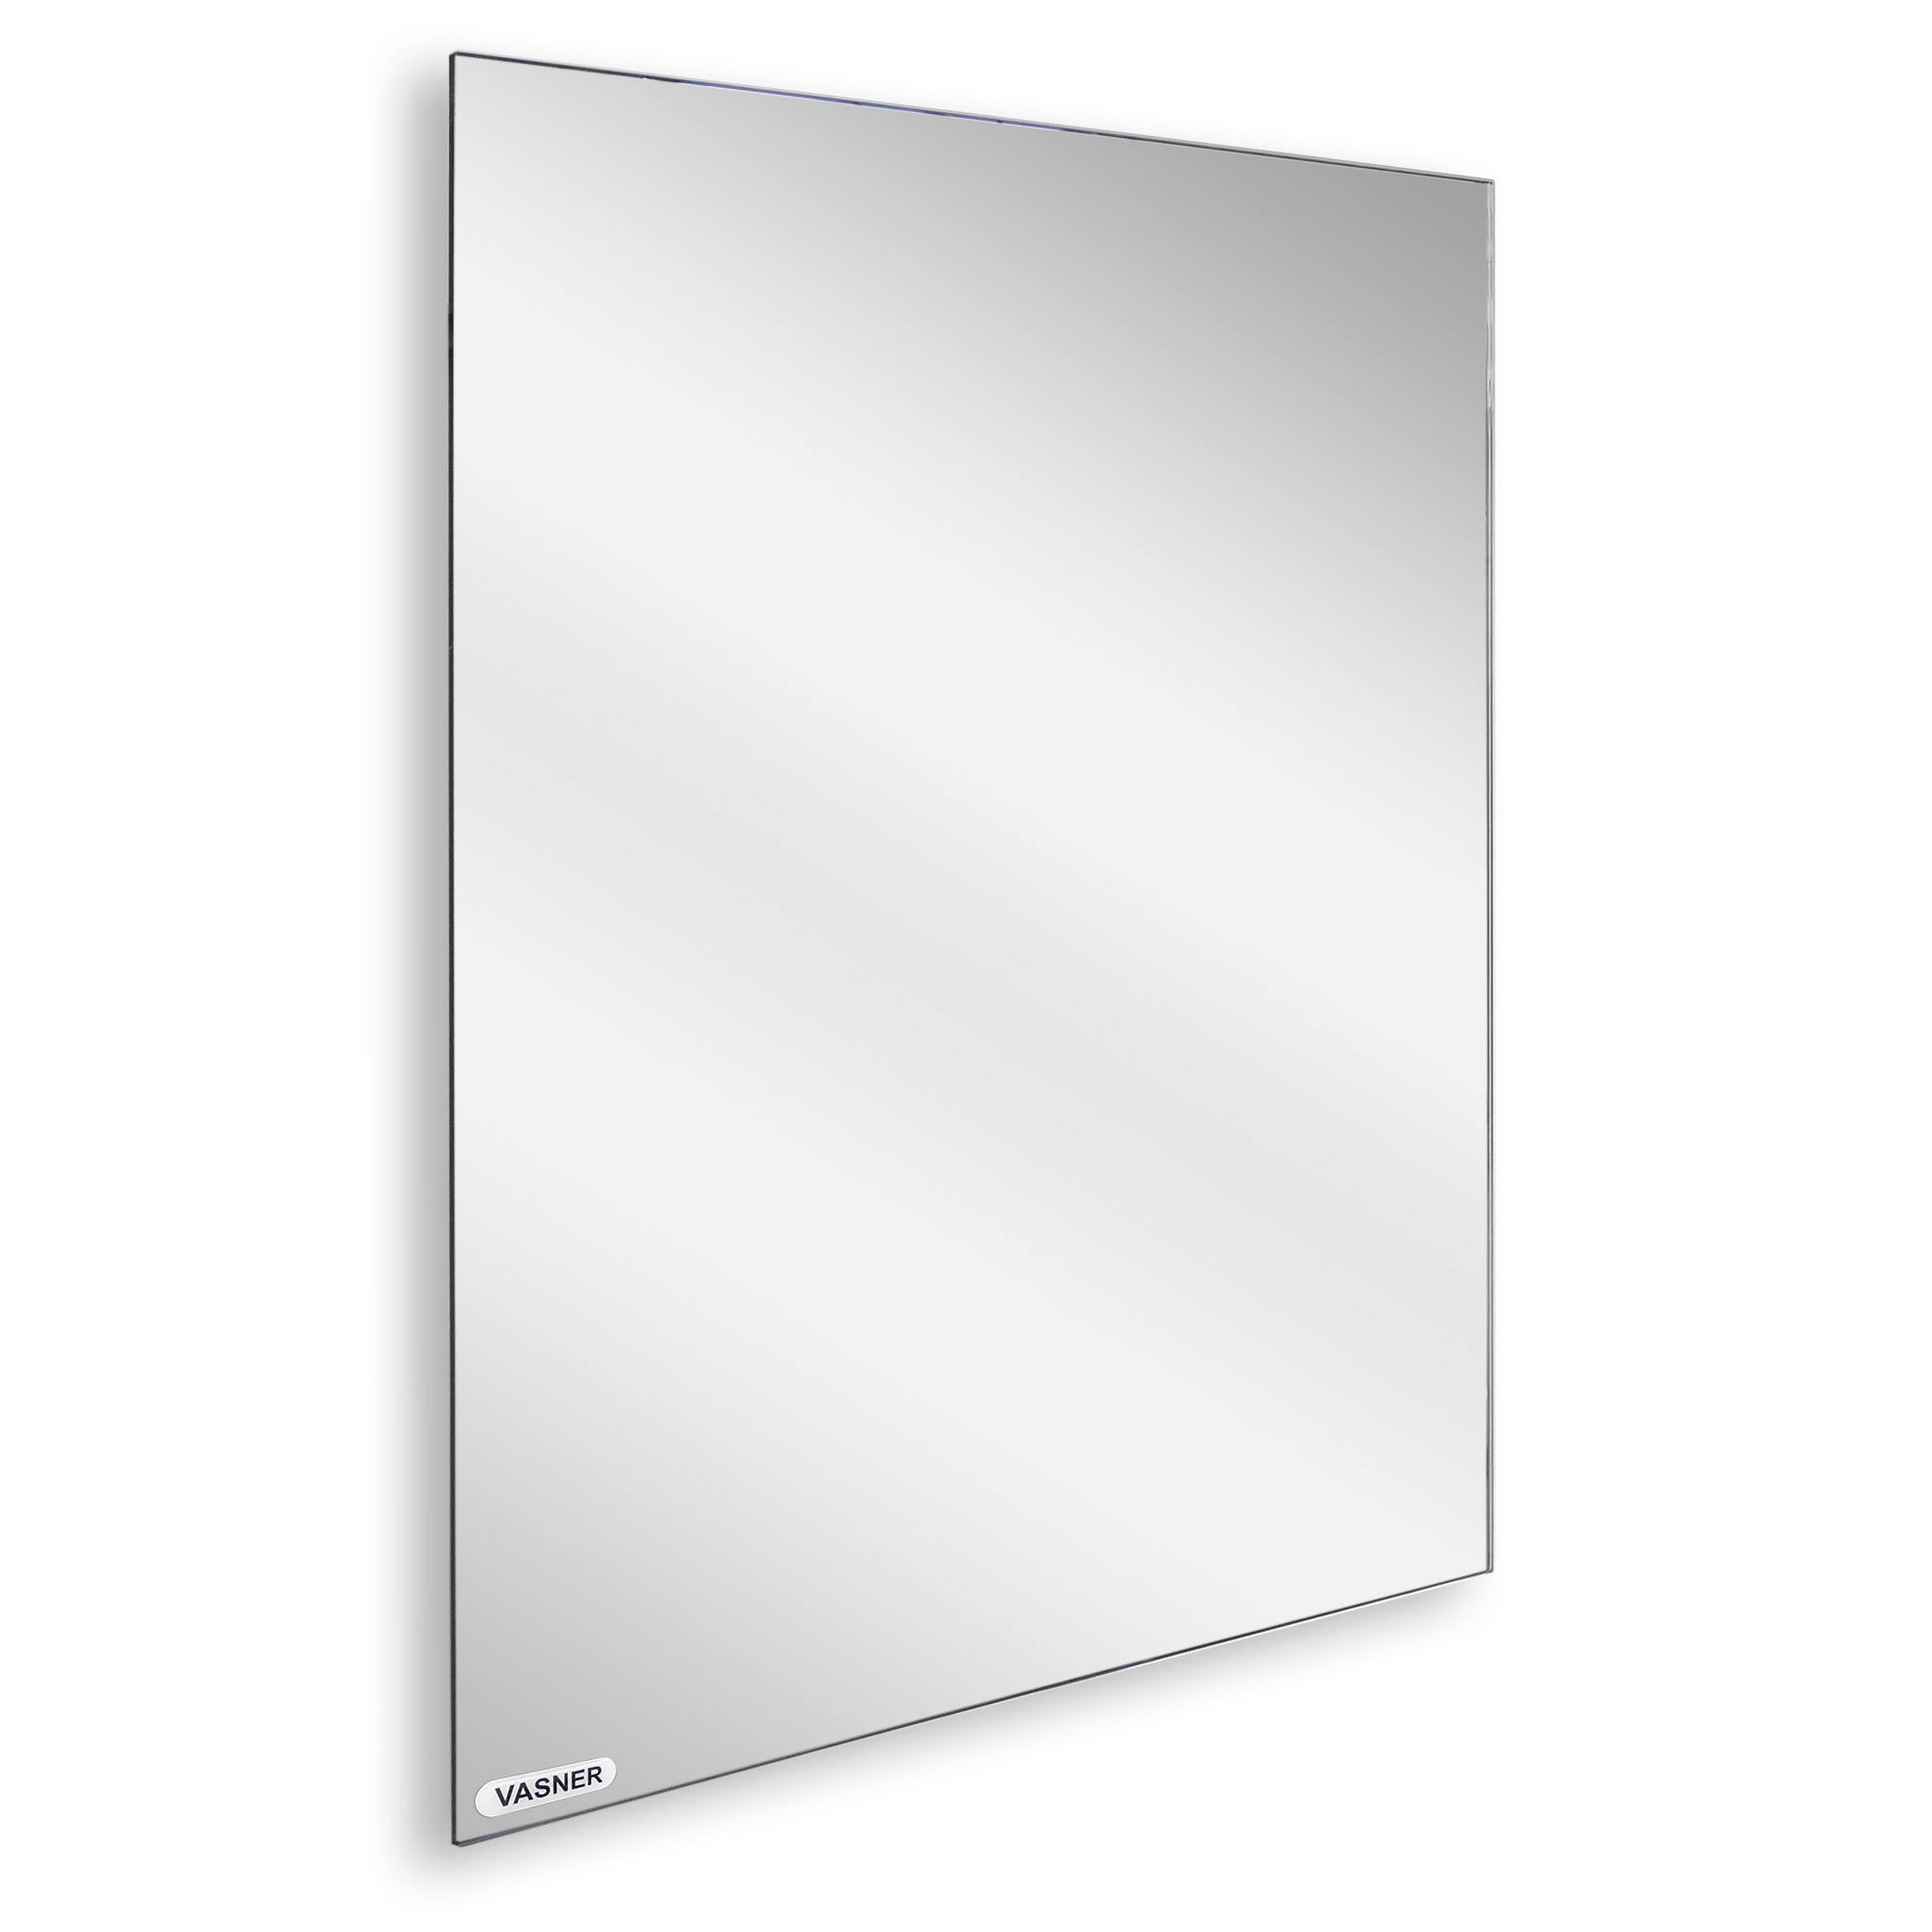 Frameless mirror heating panel